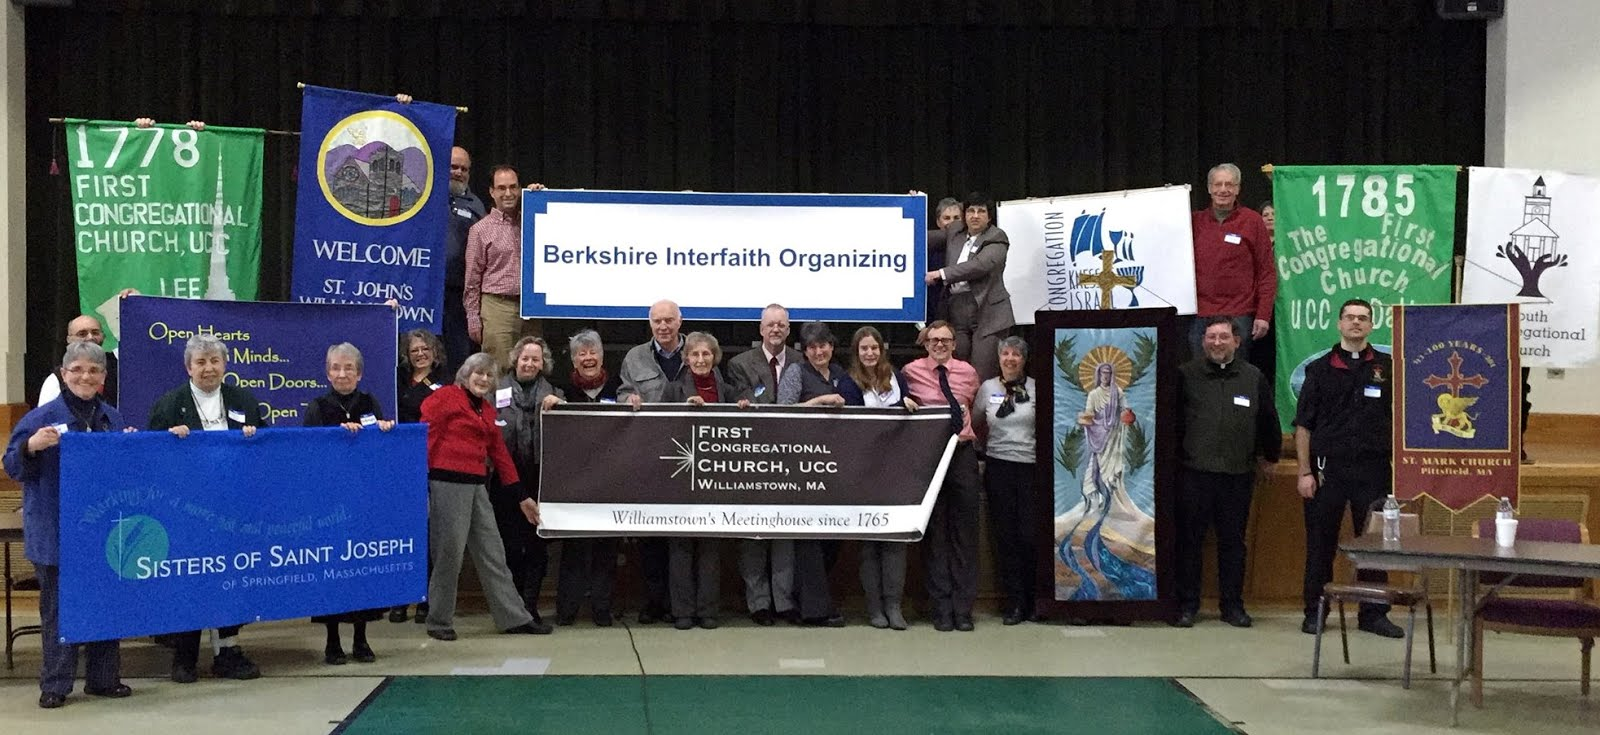 Berkshire Interfaith Organizing